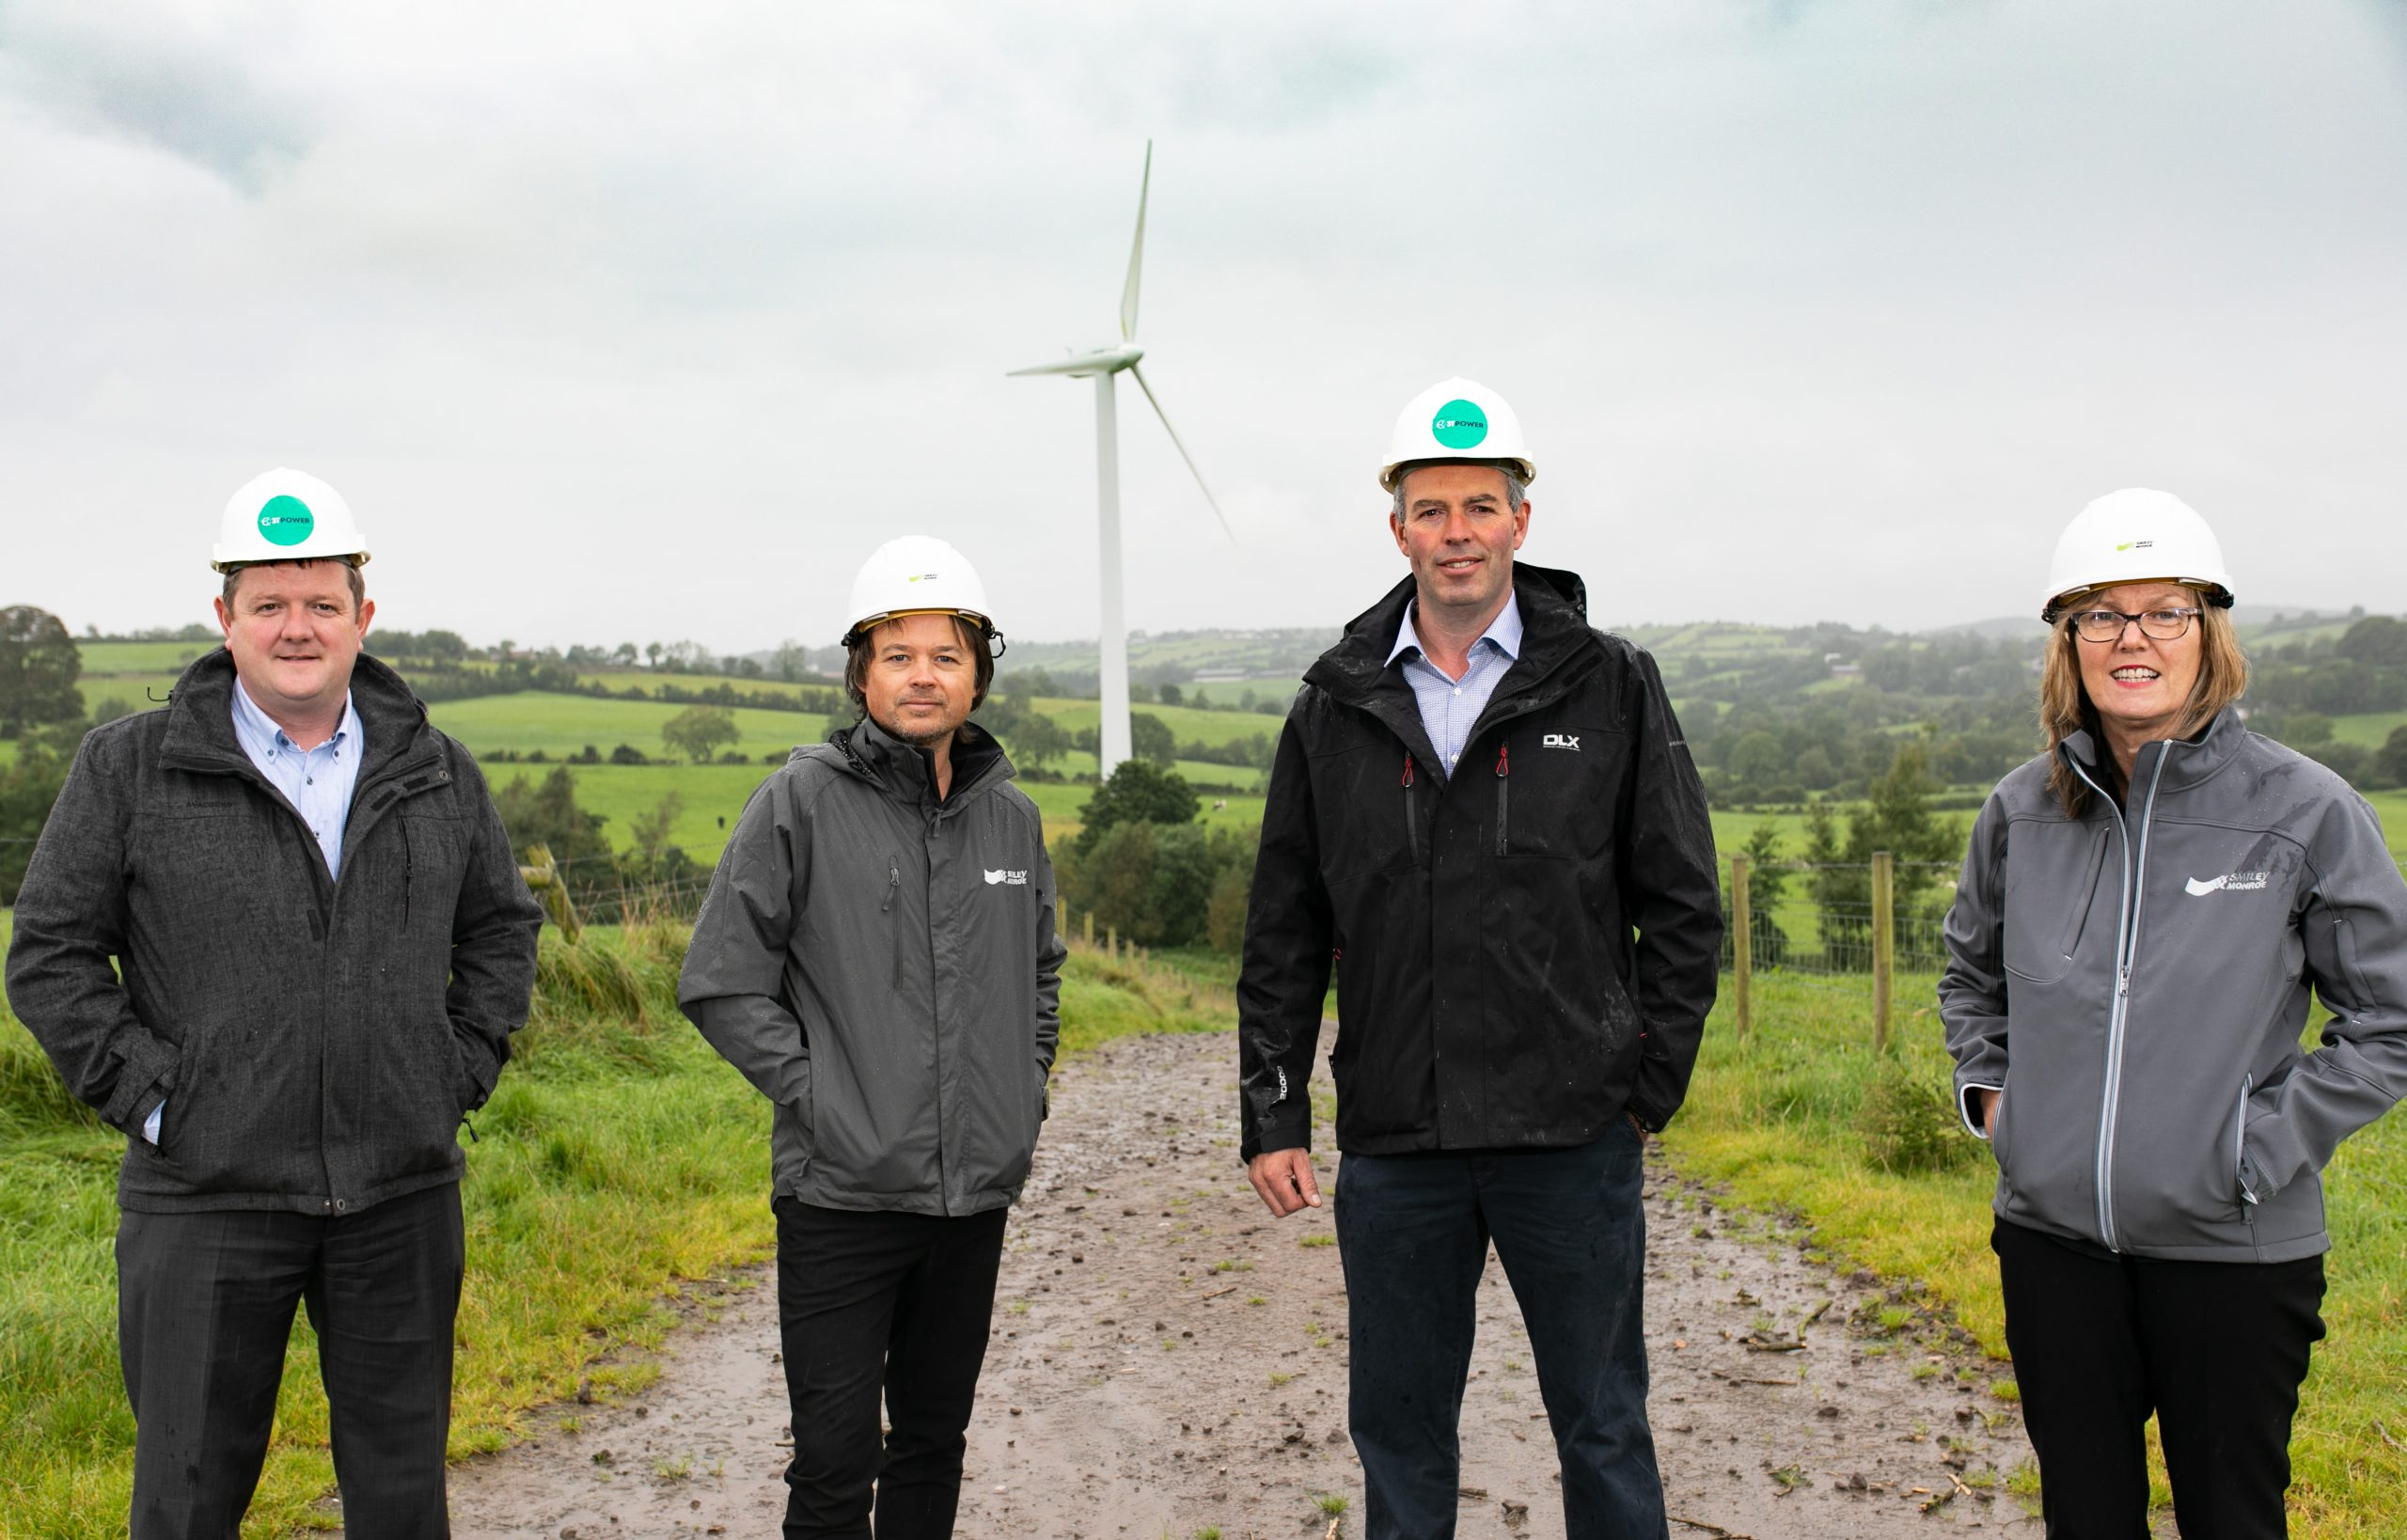 3T Power supplies The Giants of Belting with green electricity